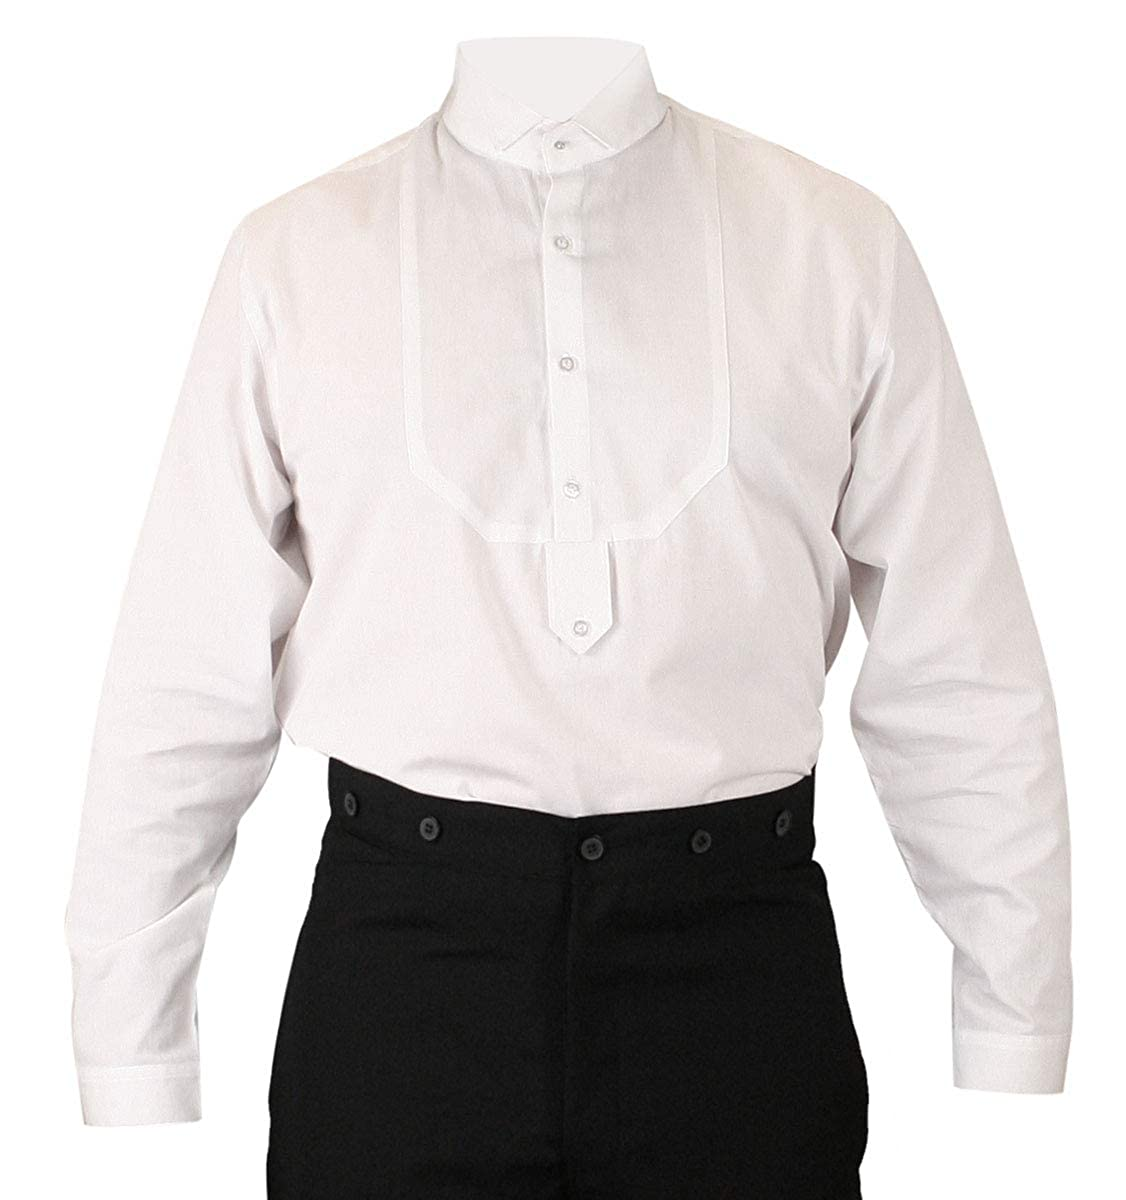 Victorian Men's Tuxedo, Tailcoats, Formalwear Guide Historical Emporium Mens Victorian Wing Tip Collar Stud/Cufflink Convertible Dress Shirt $59.95 AT vintagedancer.com